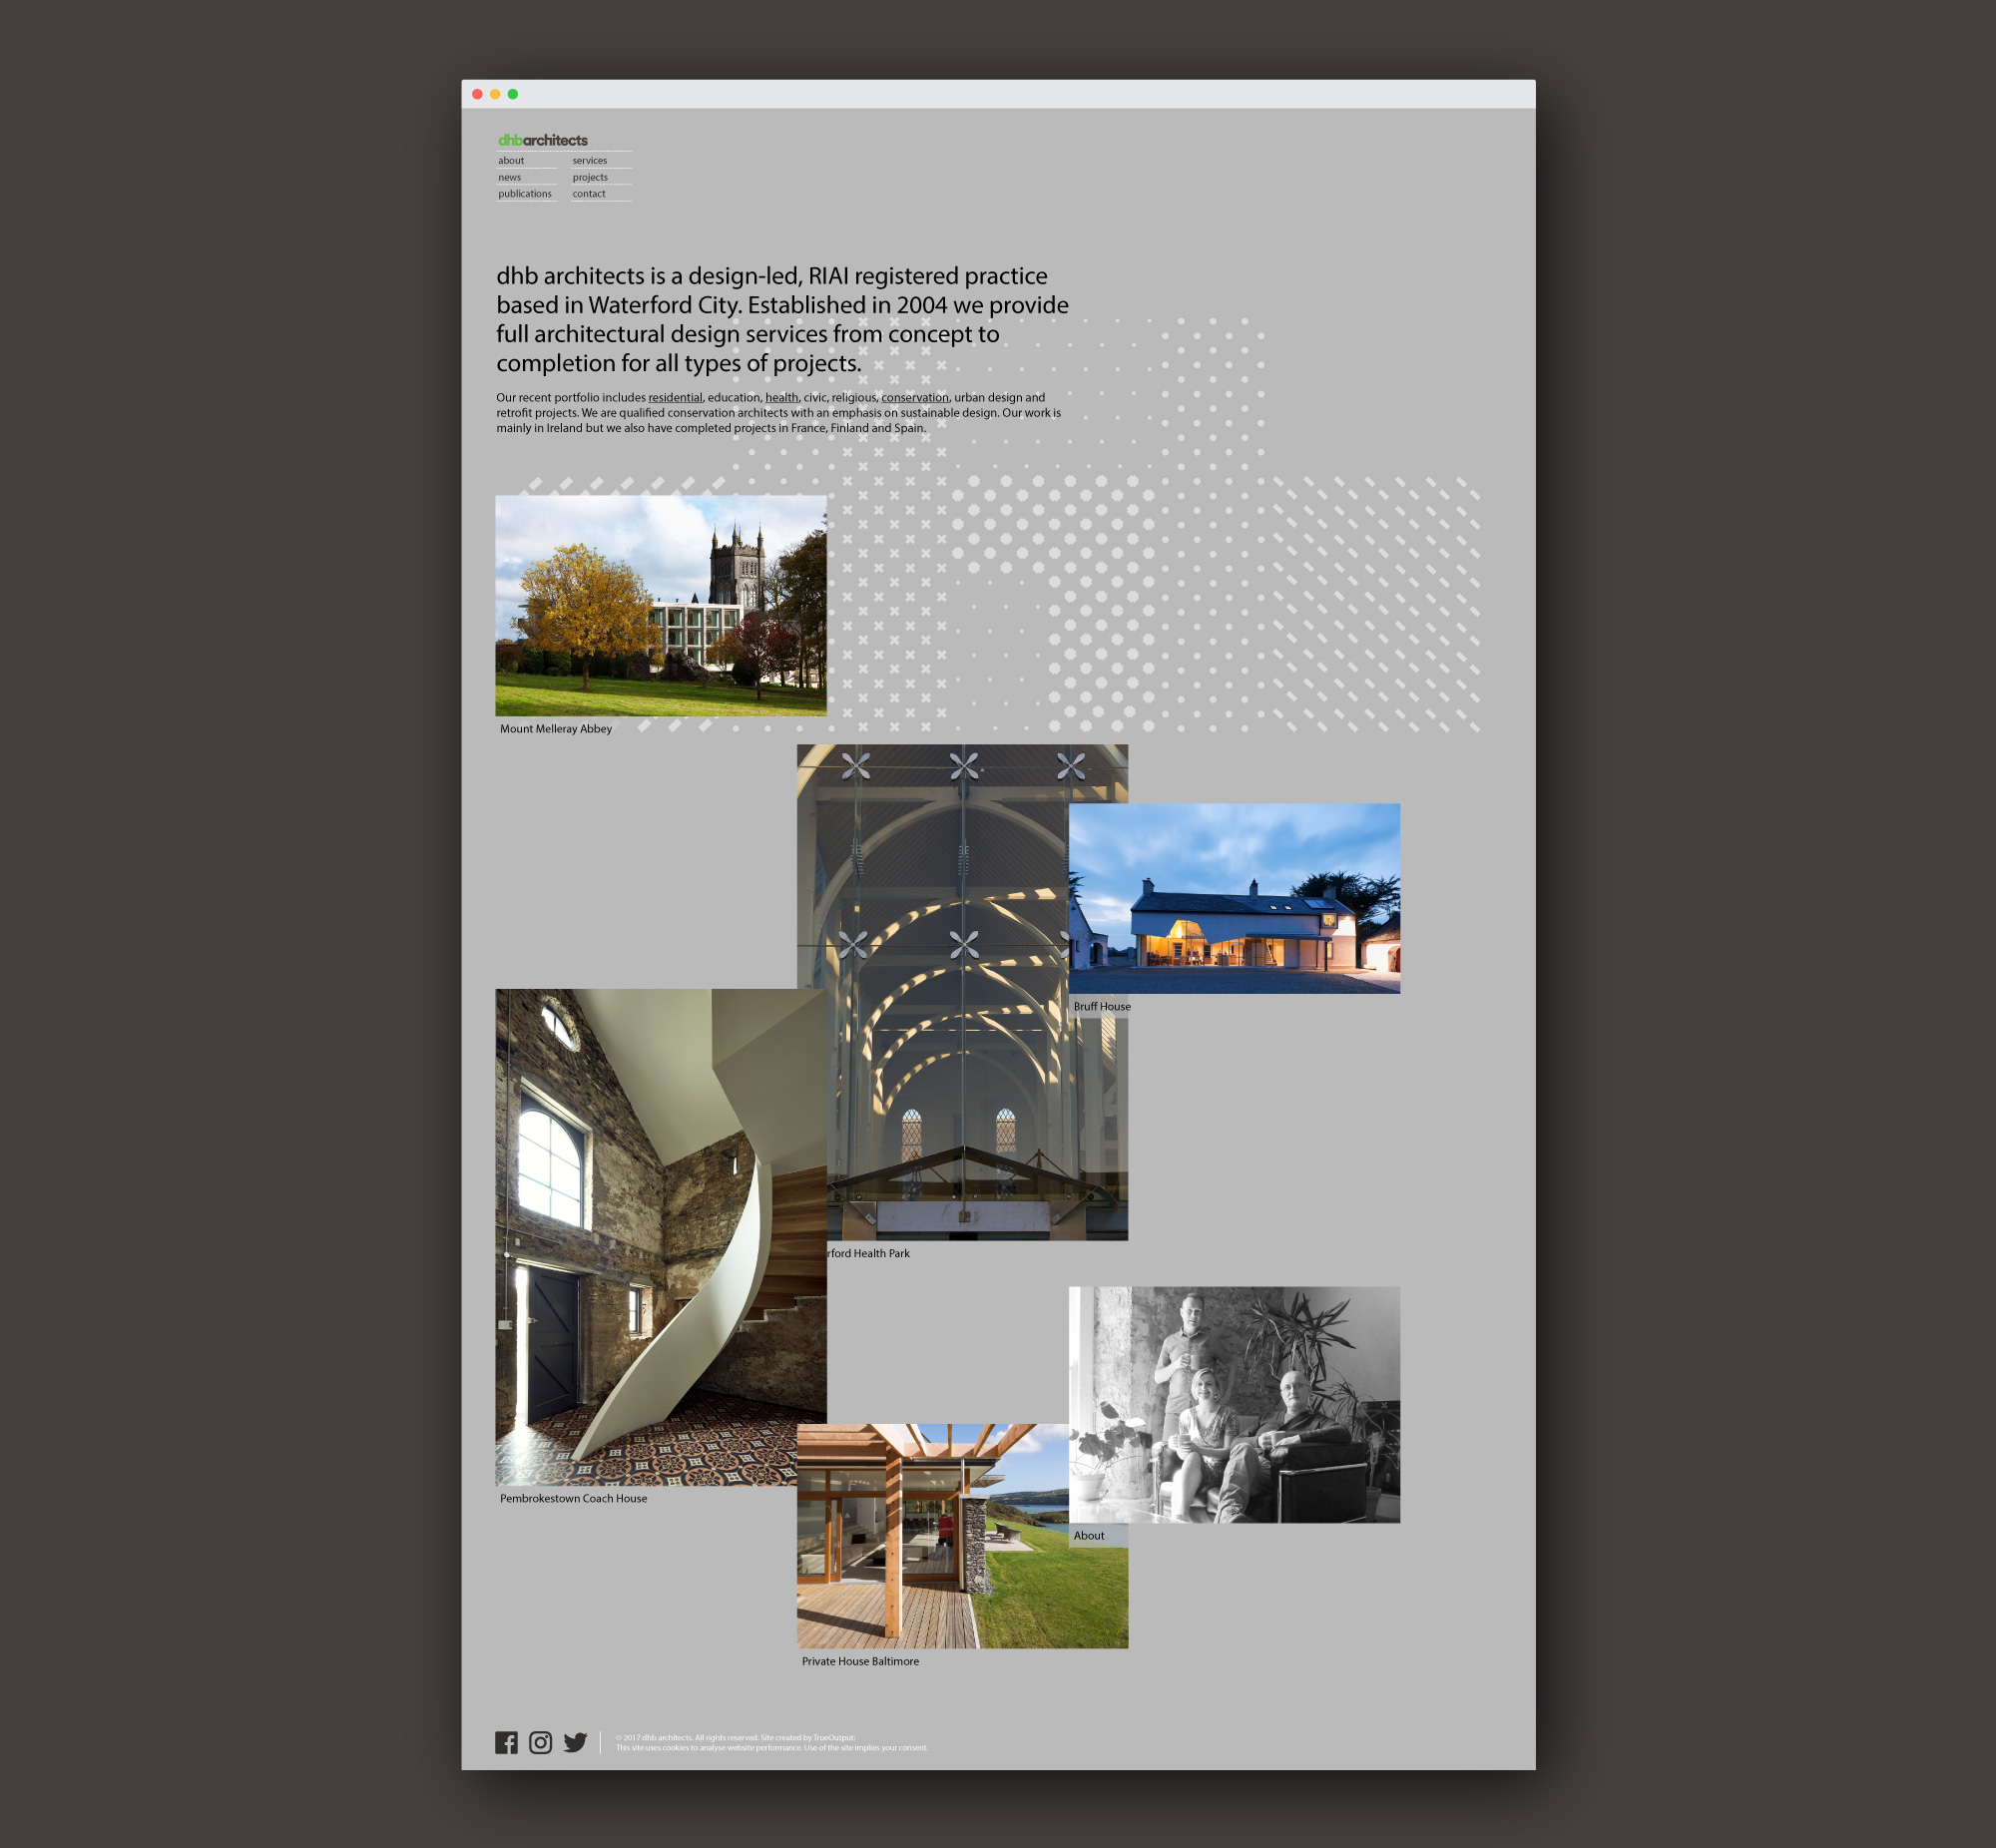 Cover image: dhb architects website